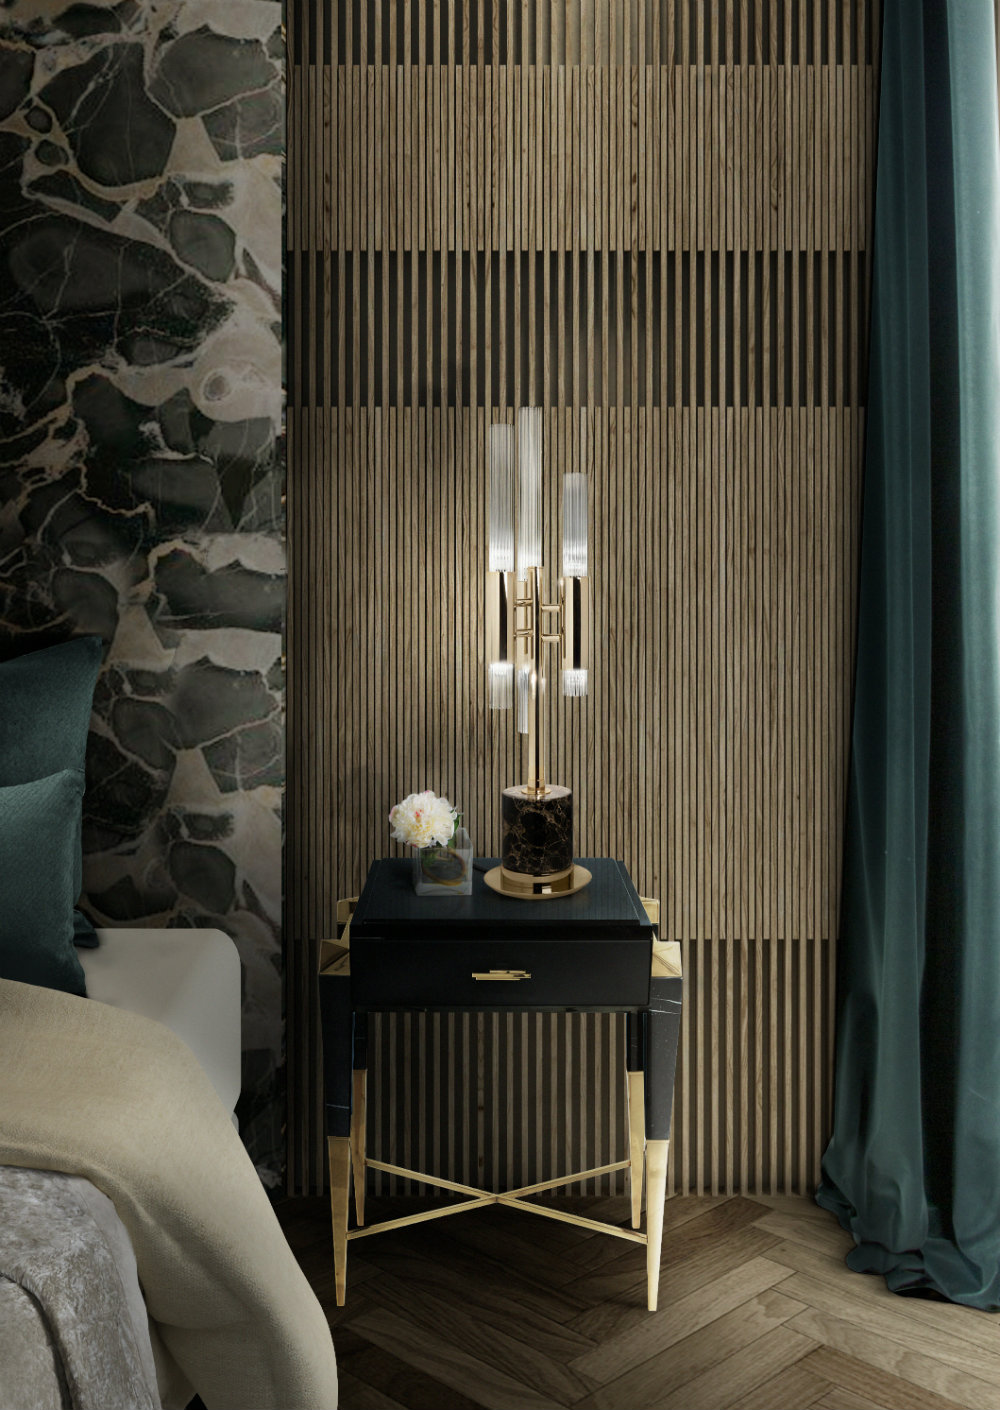 Stunning Interiors in the 2018 Fall Color Trends 02 Fall Color Trends Stunning Interiors in the 2018 Fall Color Trends Stunning Interiors in the Fall Color Trends 02